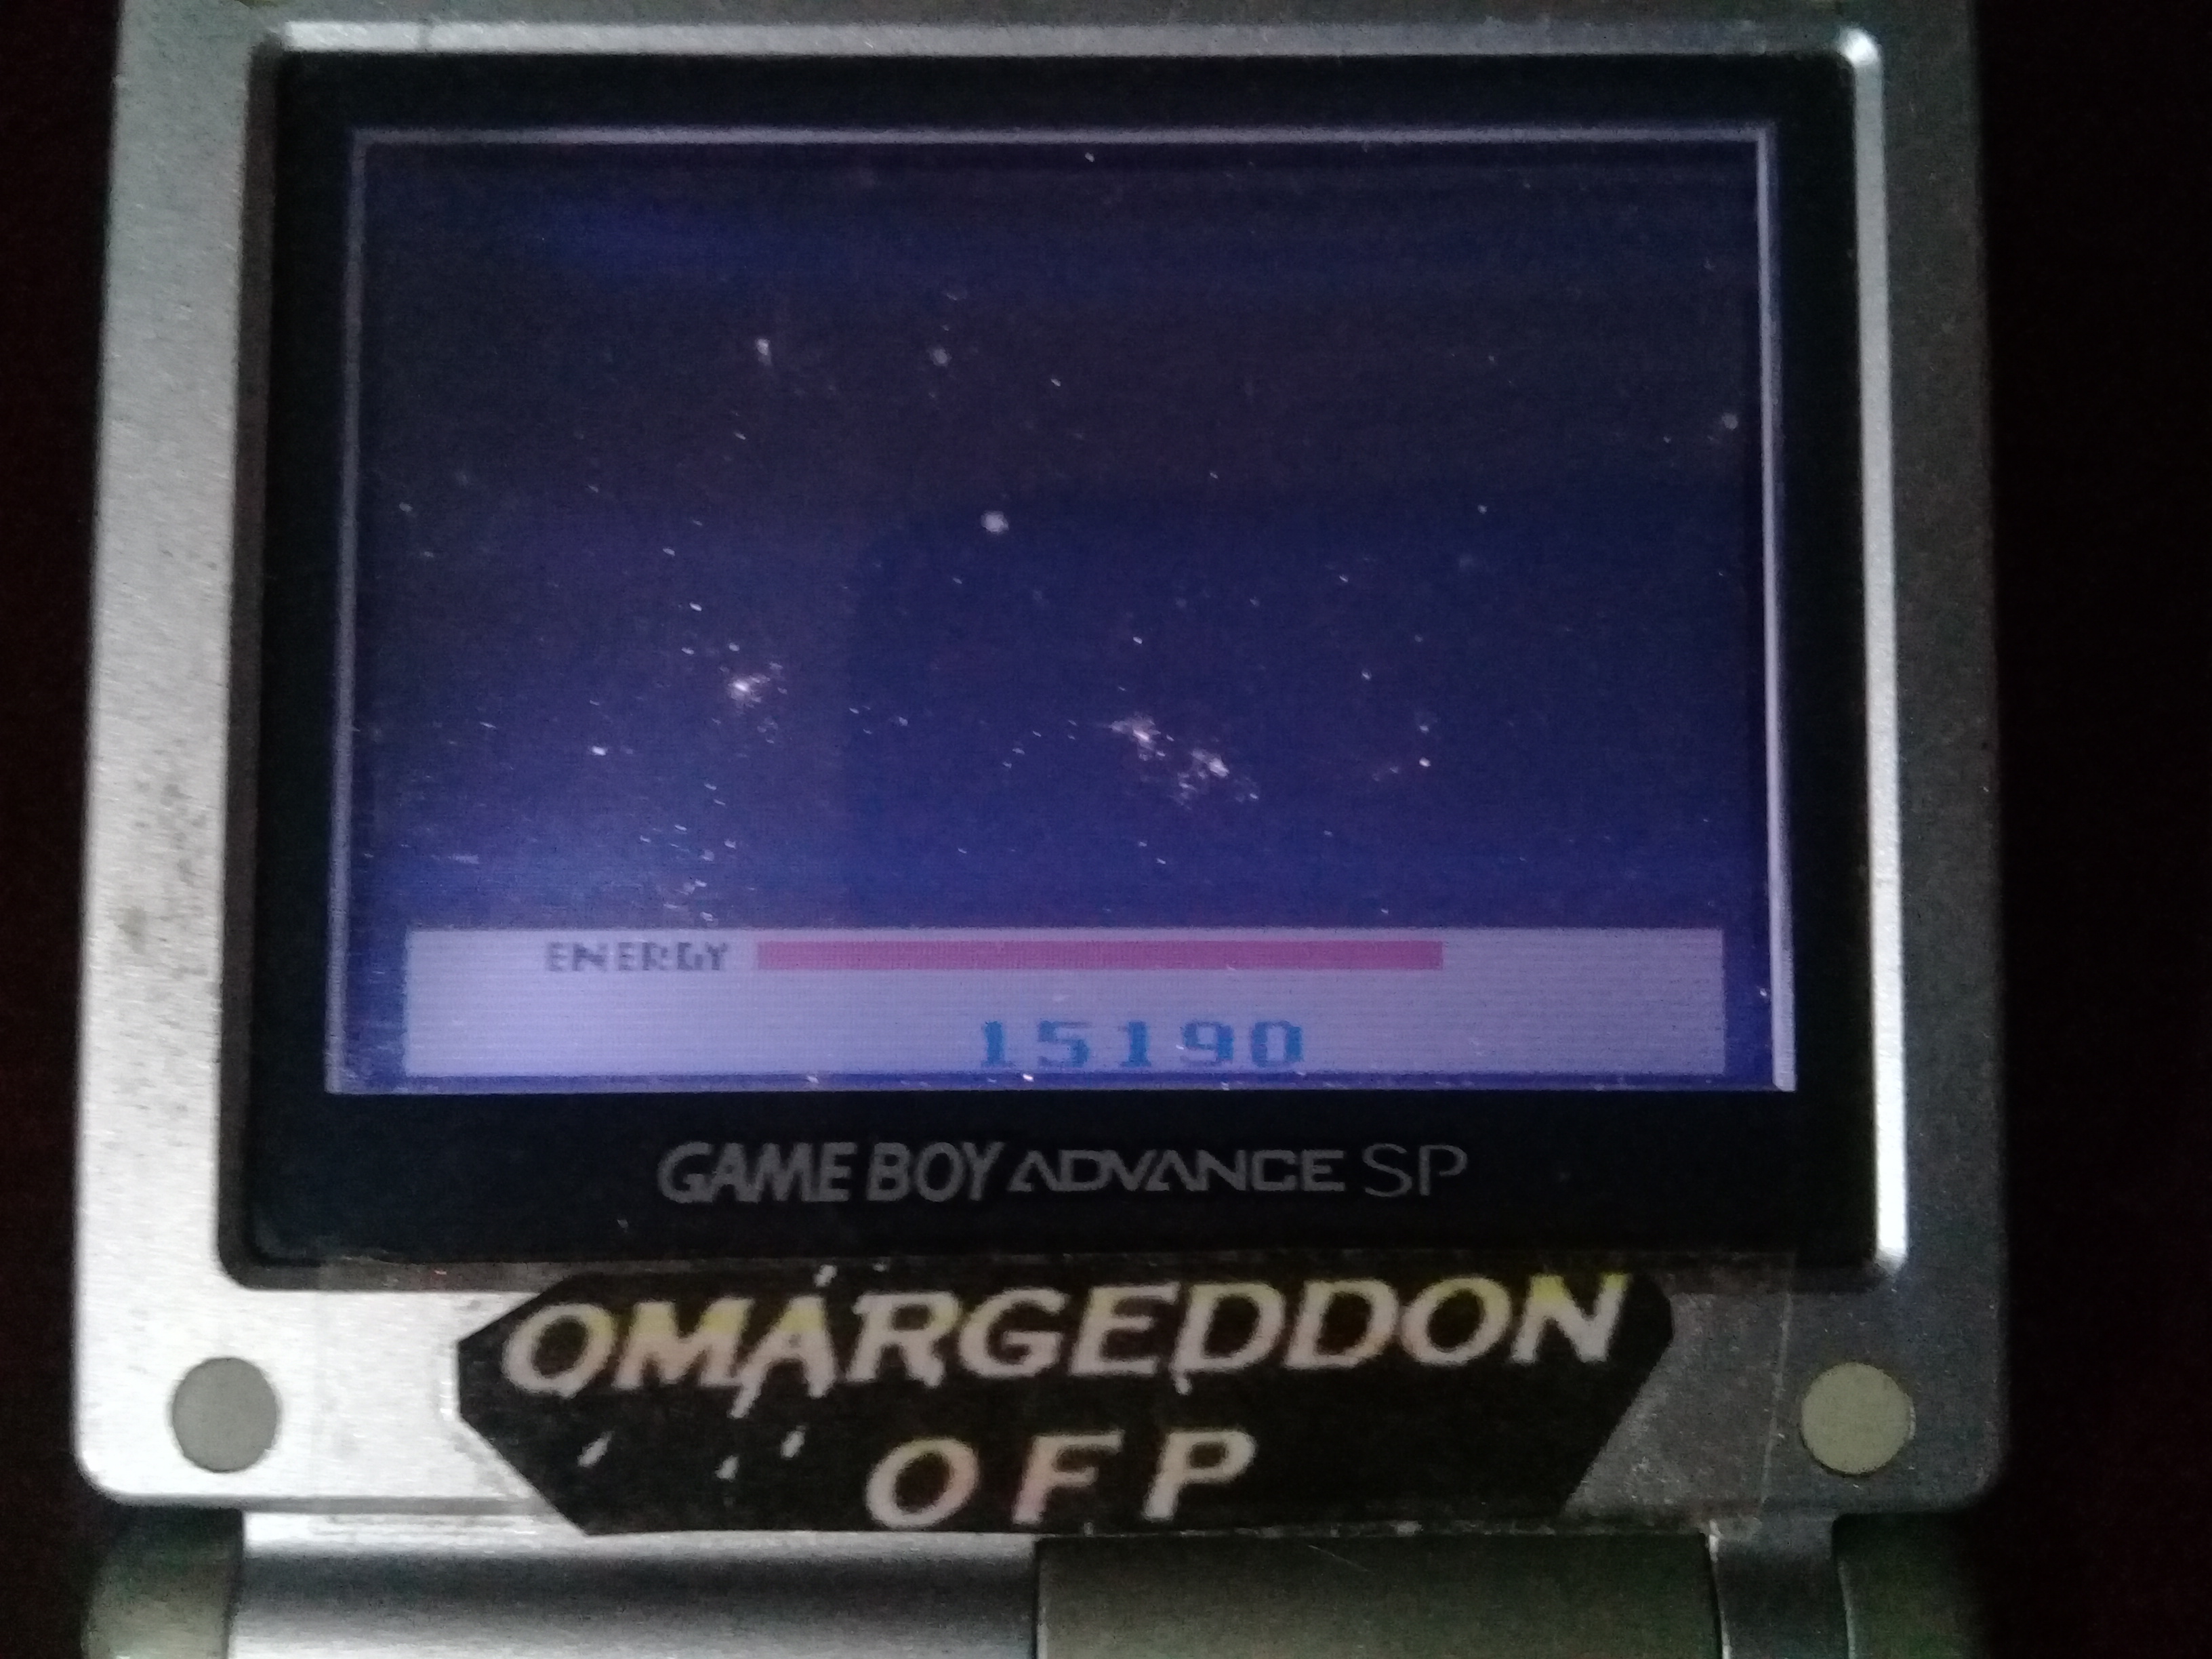 omargeddon: Activision Anthology: Megamania [Game 3A] (GBA) 15,190 points on 2020-05-03 17:59:23